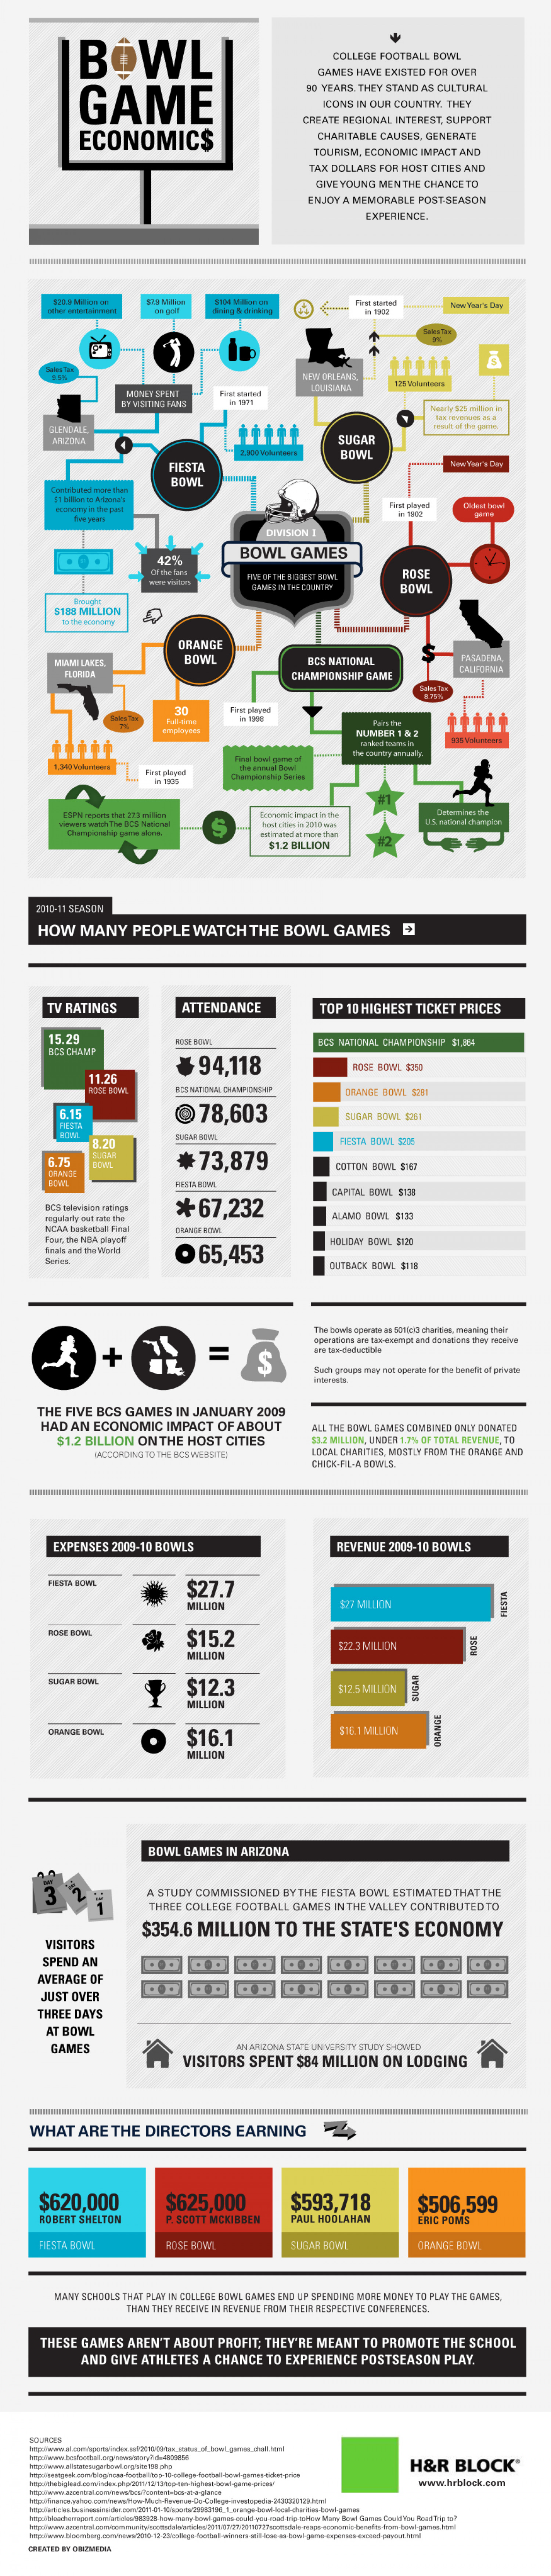 College Bowl Games – How Much of a Big (Money) Deal Are They? Infographic